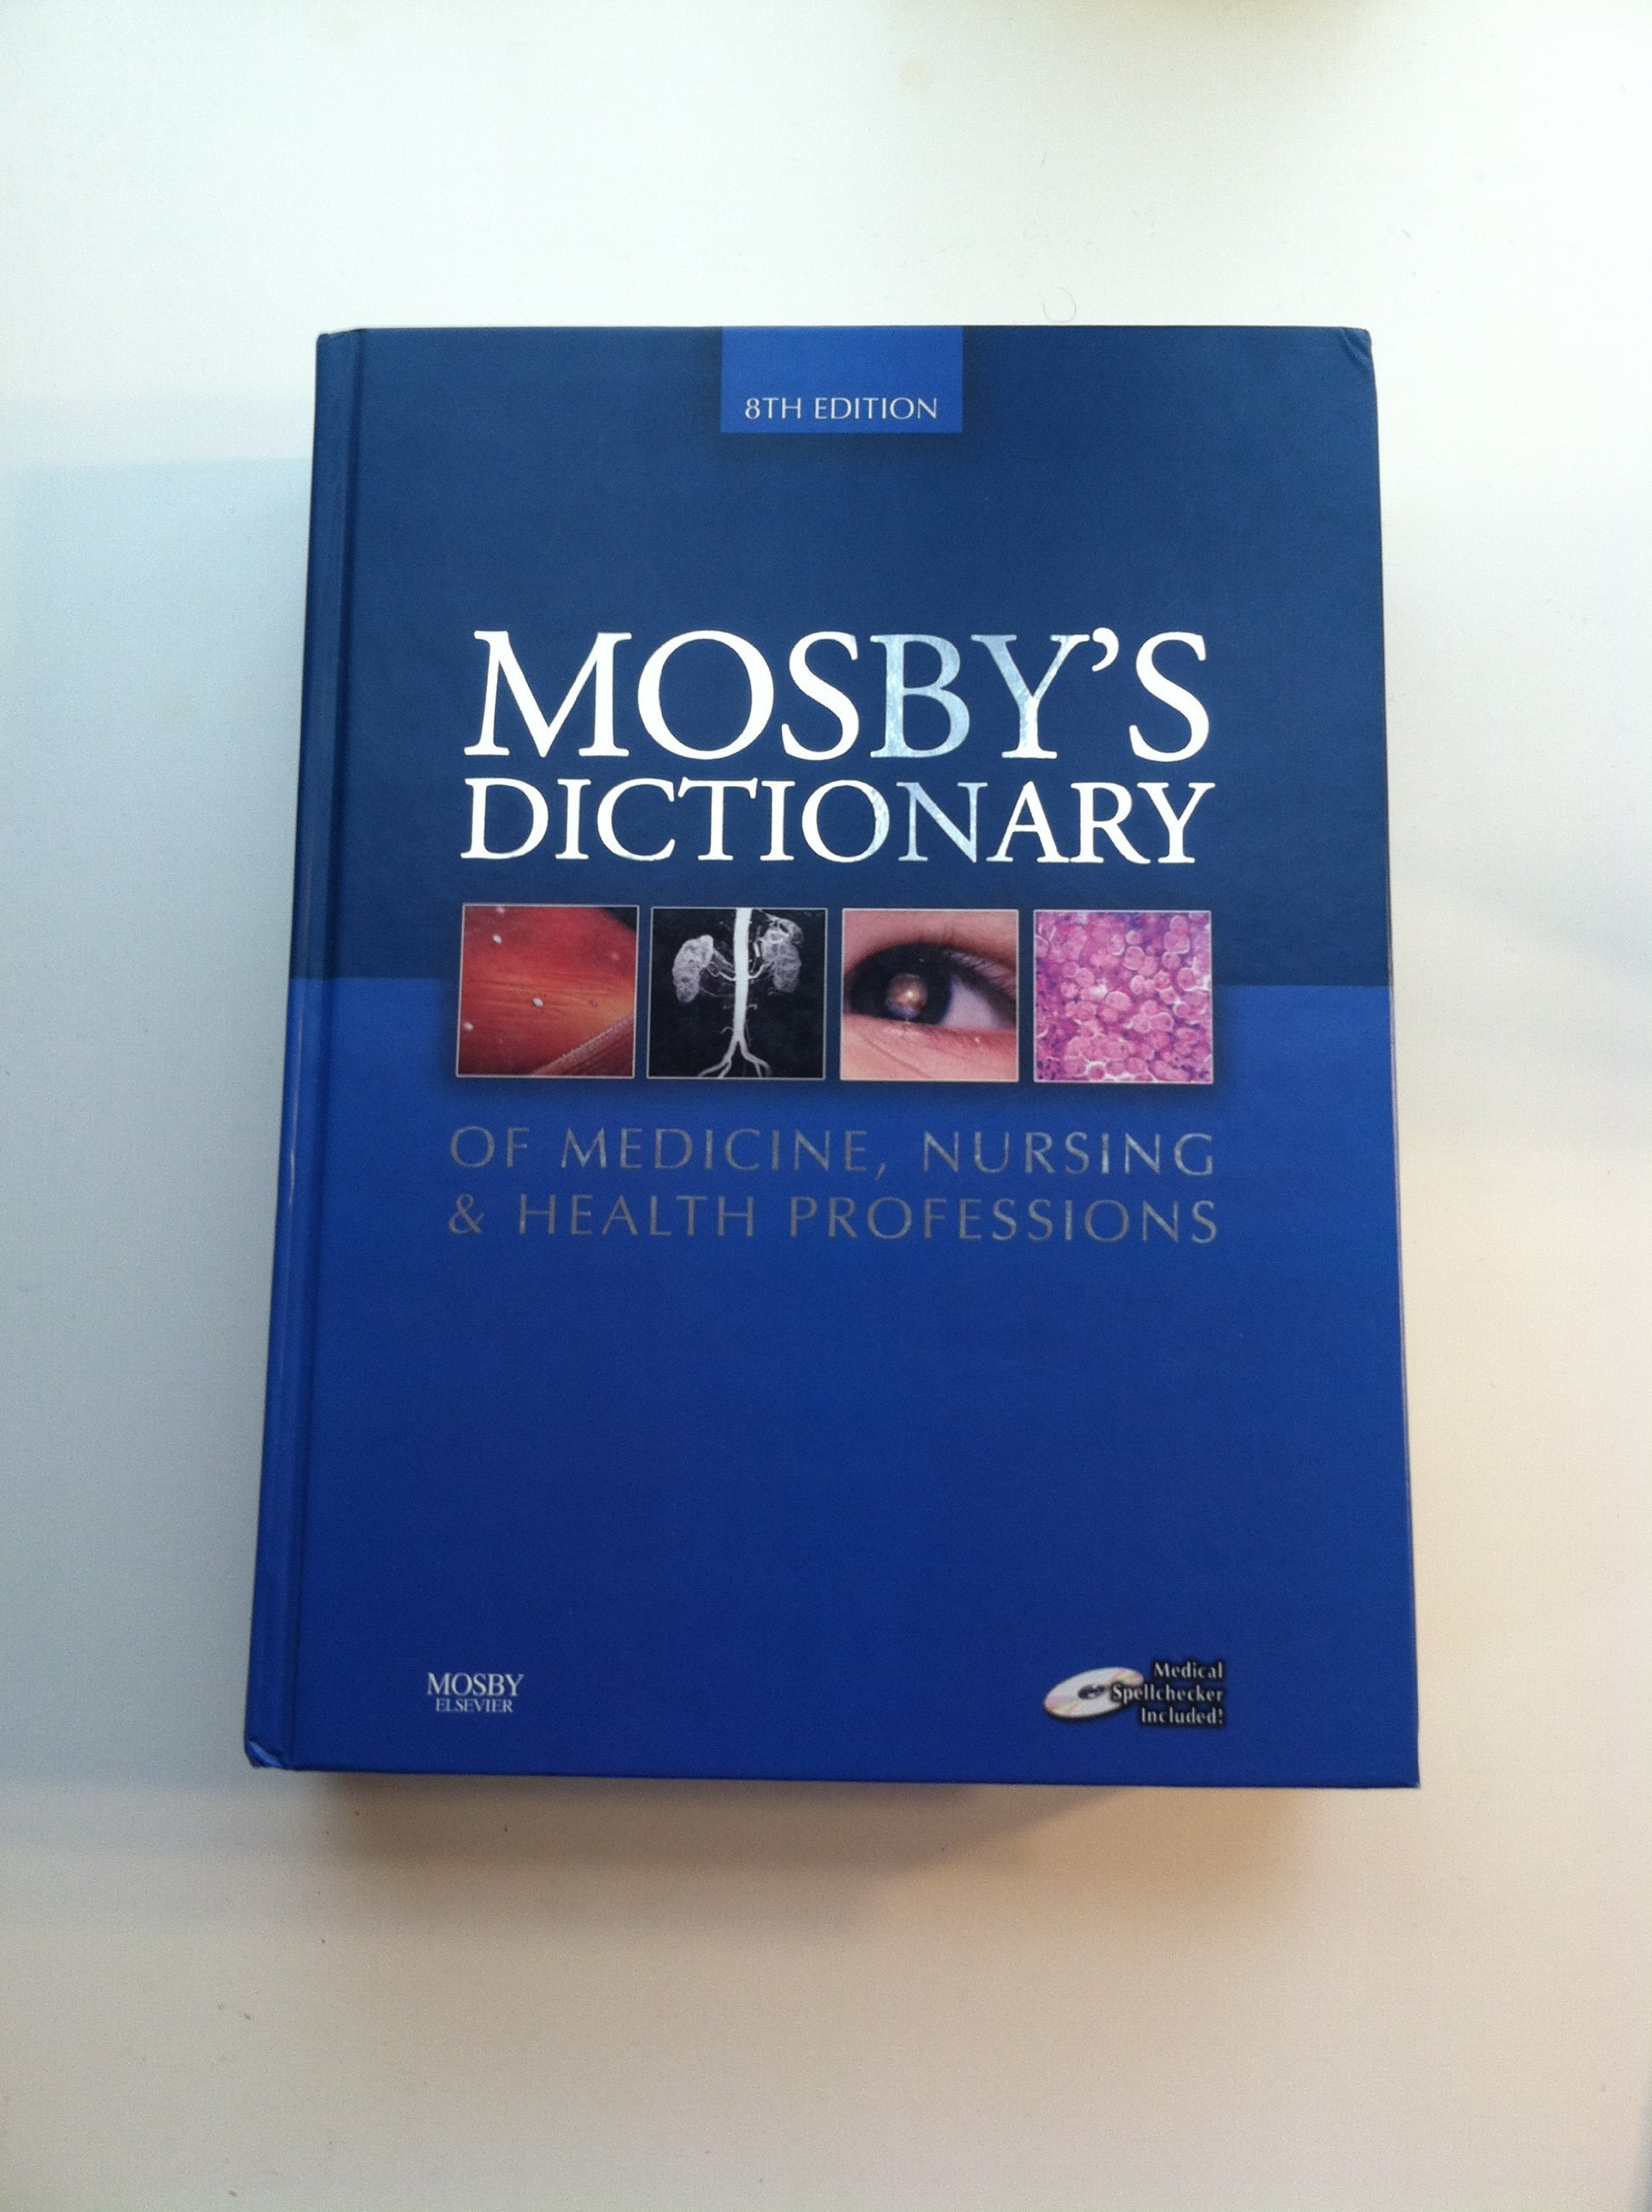 Mosby's Dictionary of Medicine, Nursing & Health Professions ebook